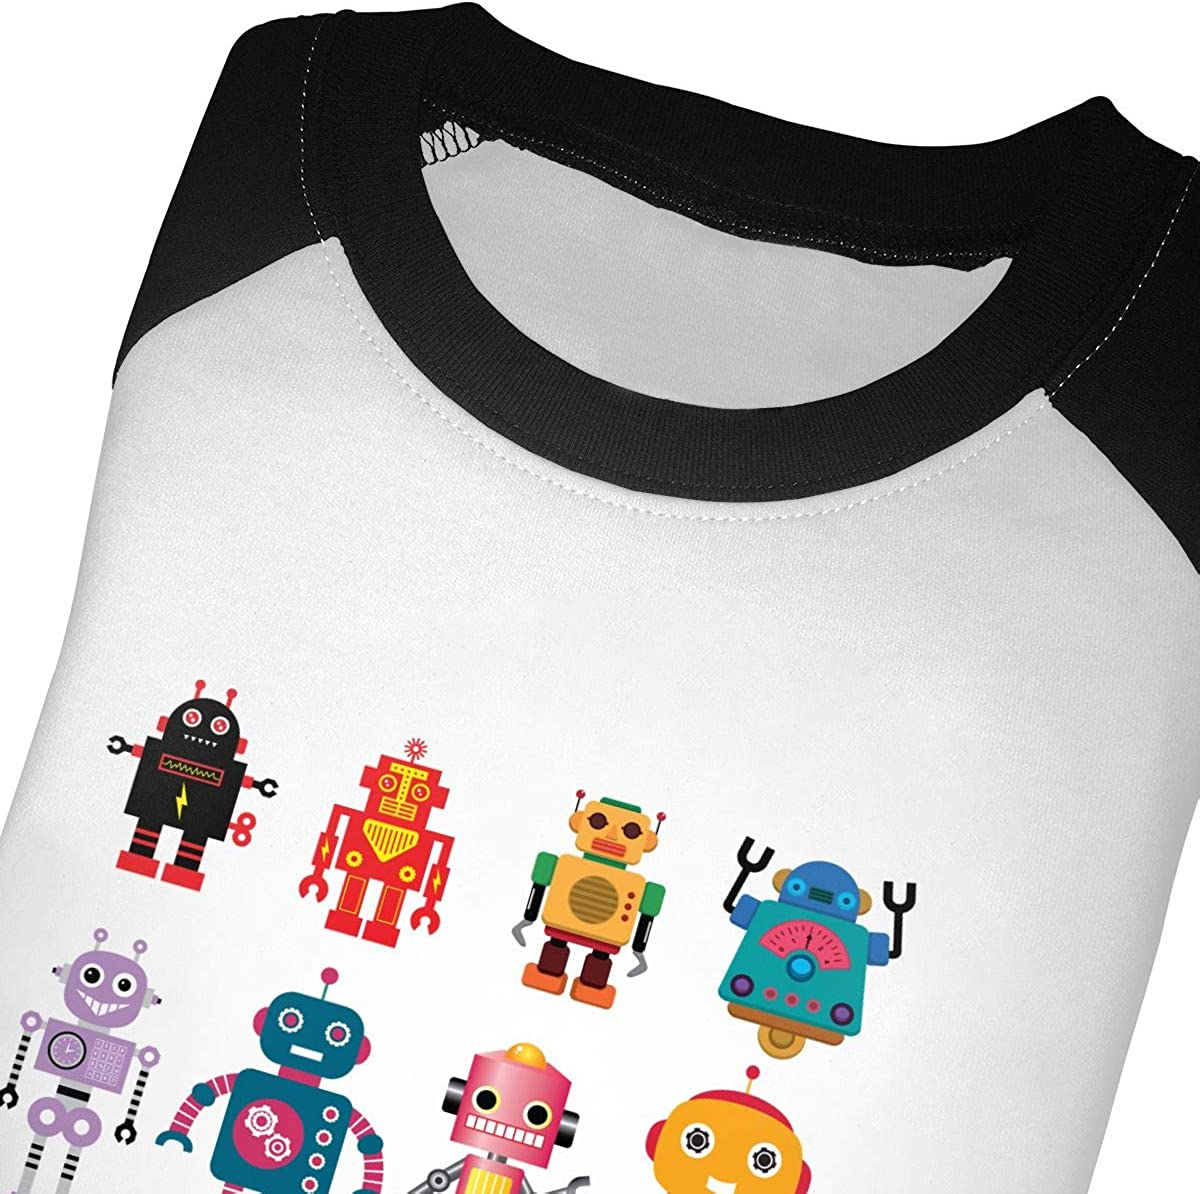 HIGASQ Unisex Baby Colorful Cute Robot Toddlers O Neck Raglan 3//4 Sleeve Baseball T Shirt for 2-6 Boys Girls